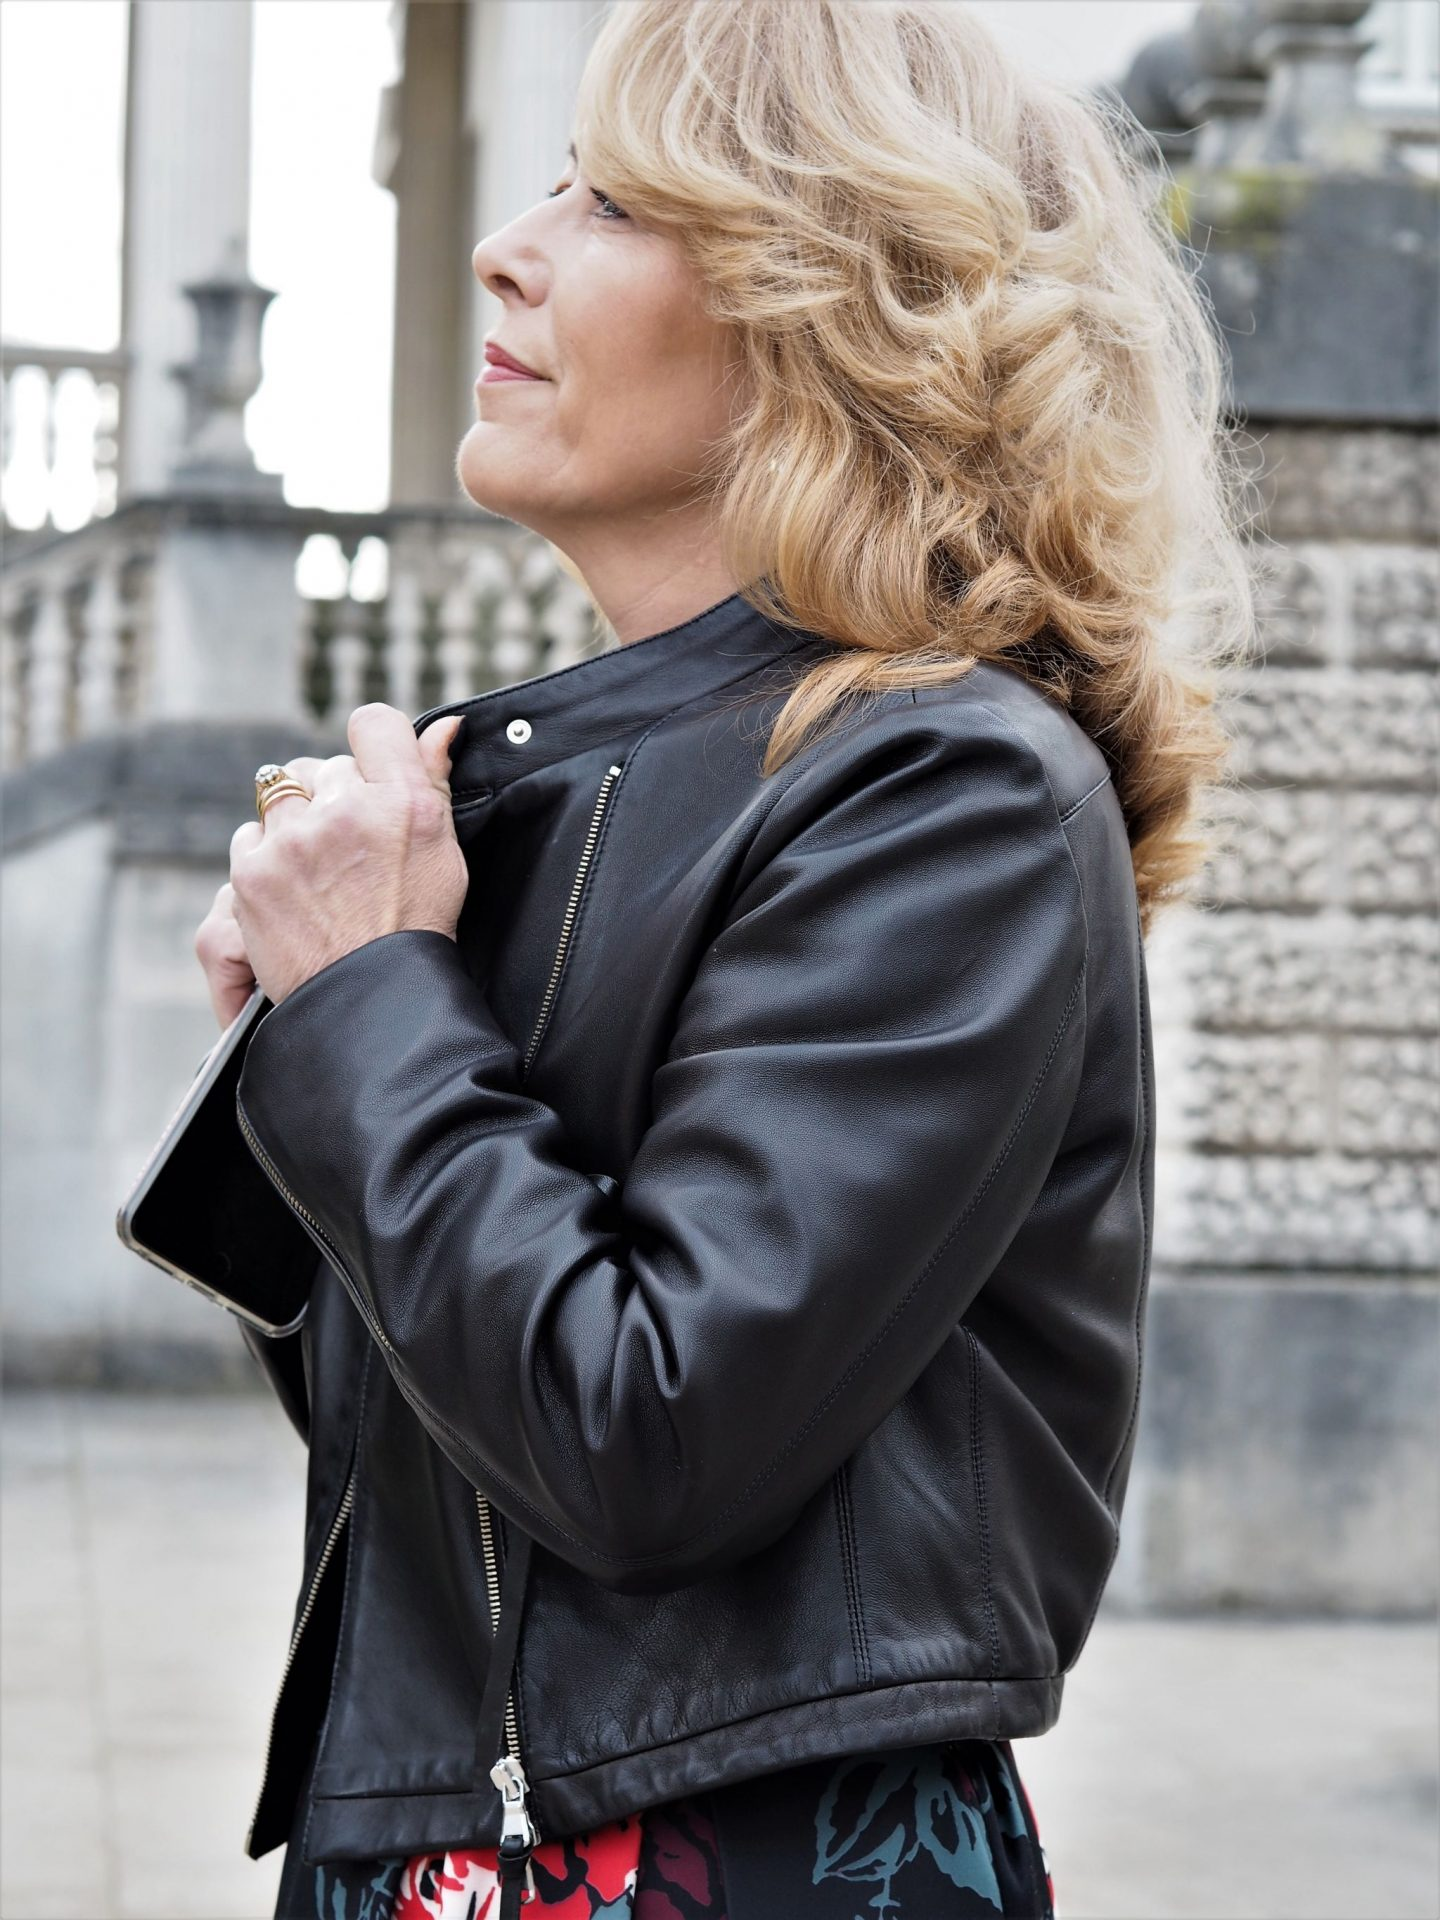 I've been excited to share this new biker jacket with you, not just because I love it but because of where it's from.